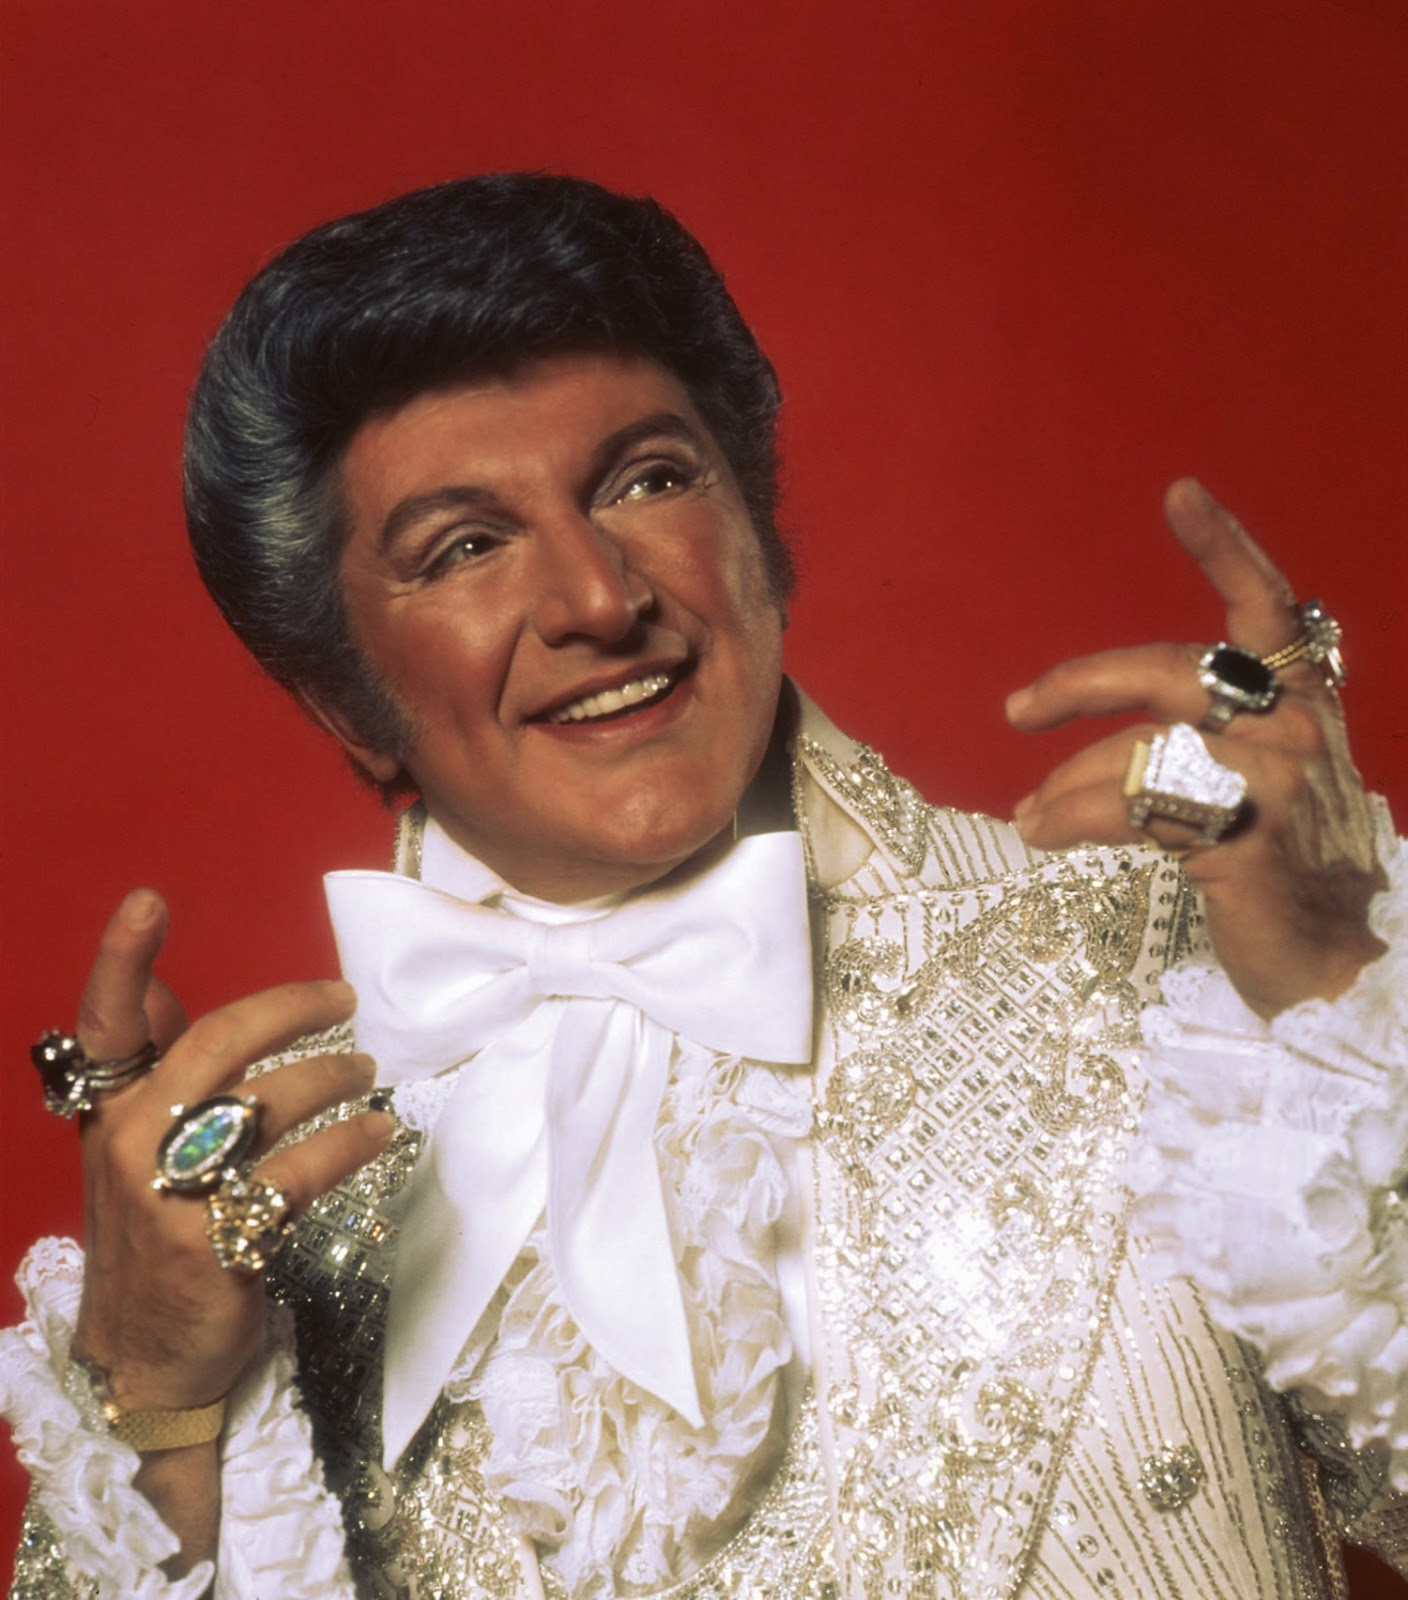 FROM THE VAULTS: Liberace born 16 May 1919